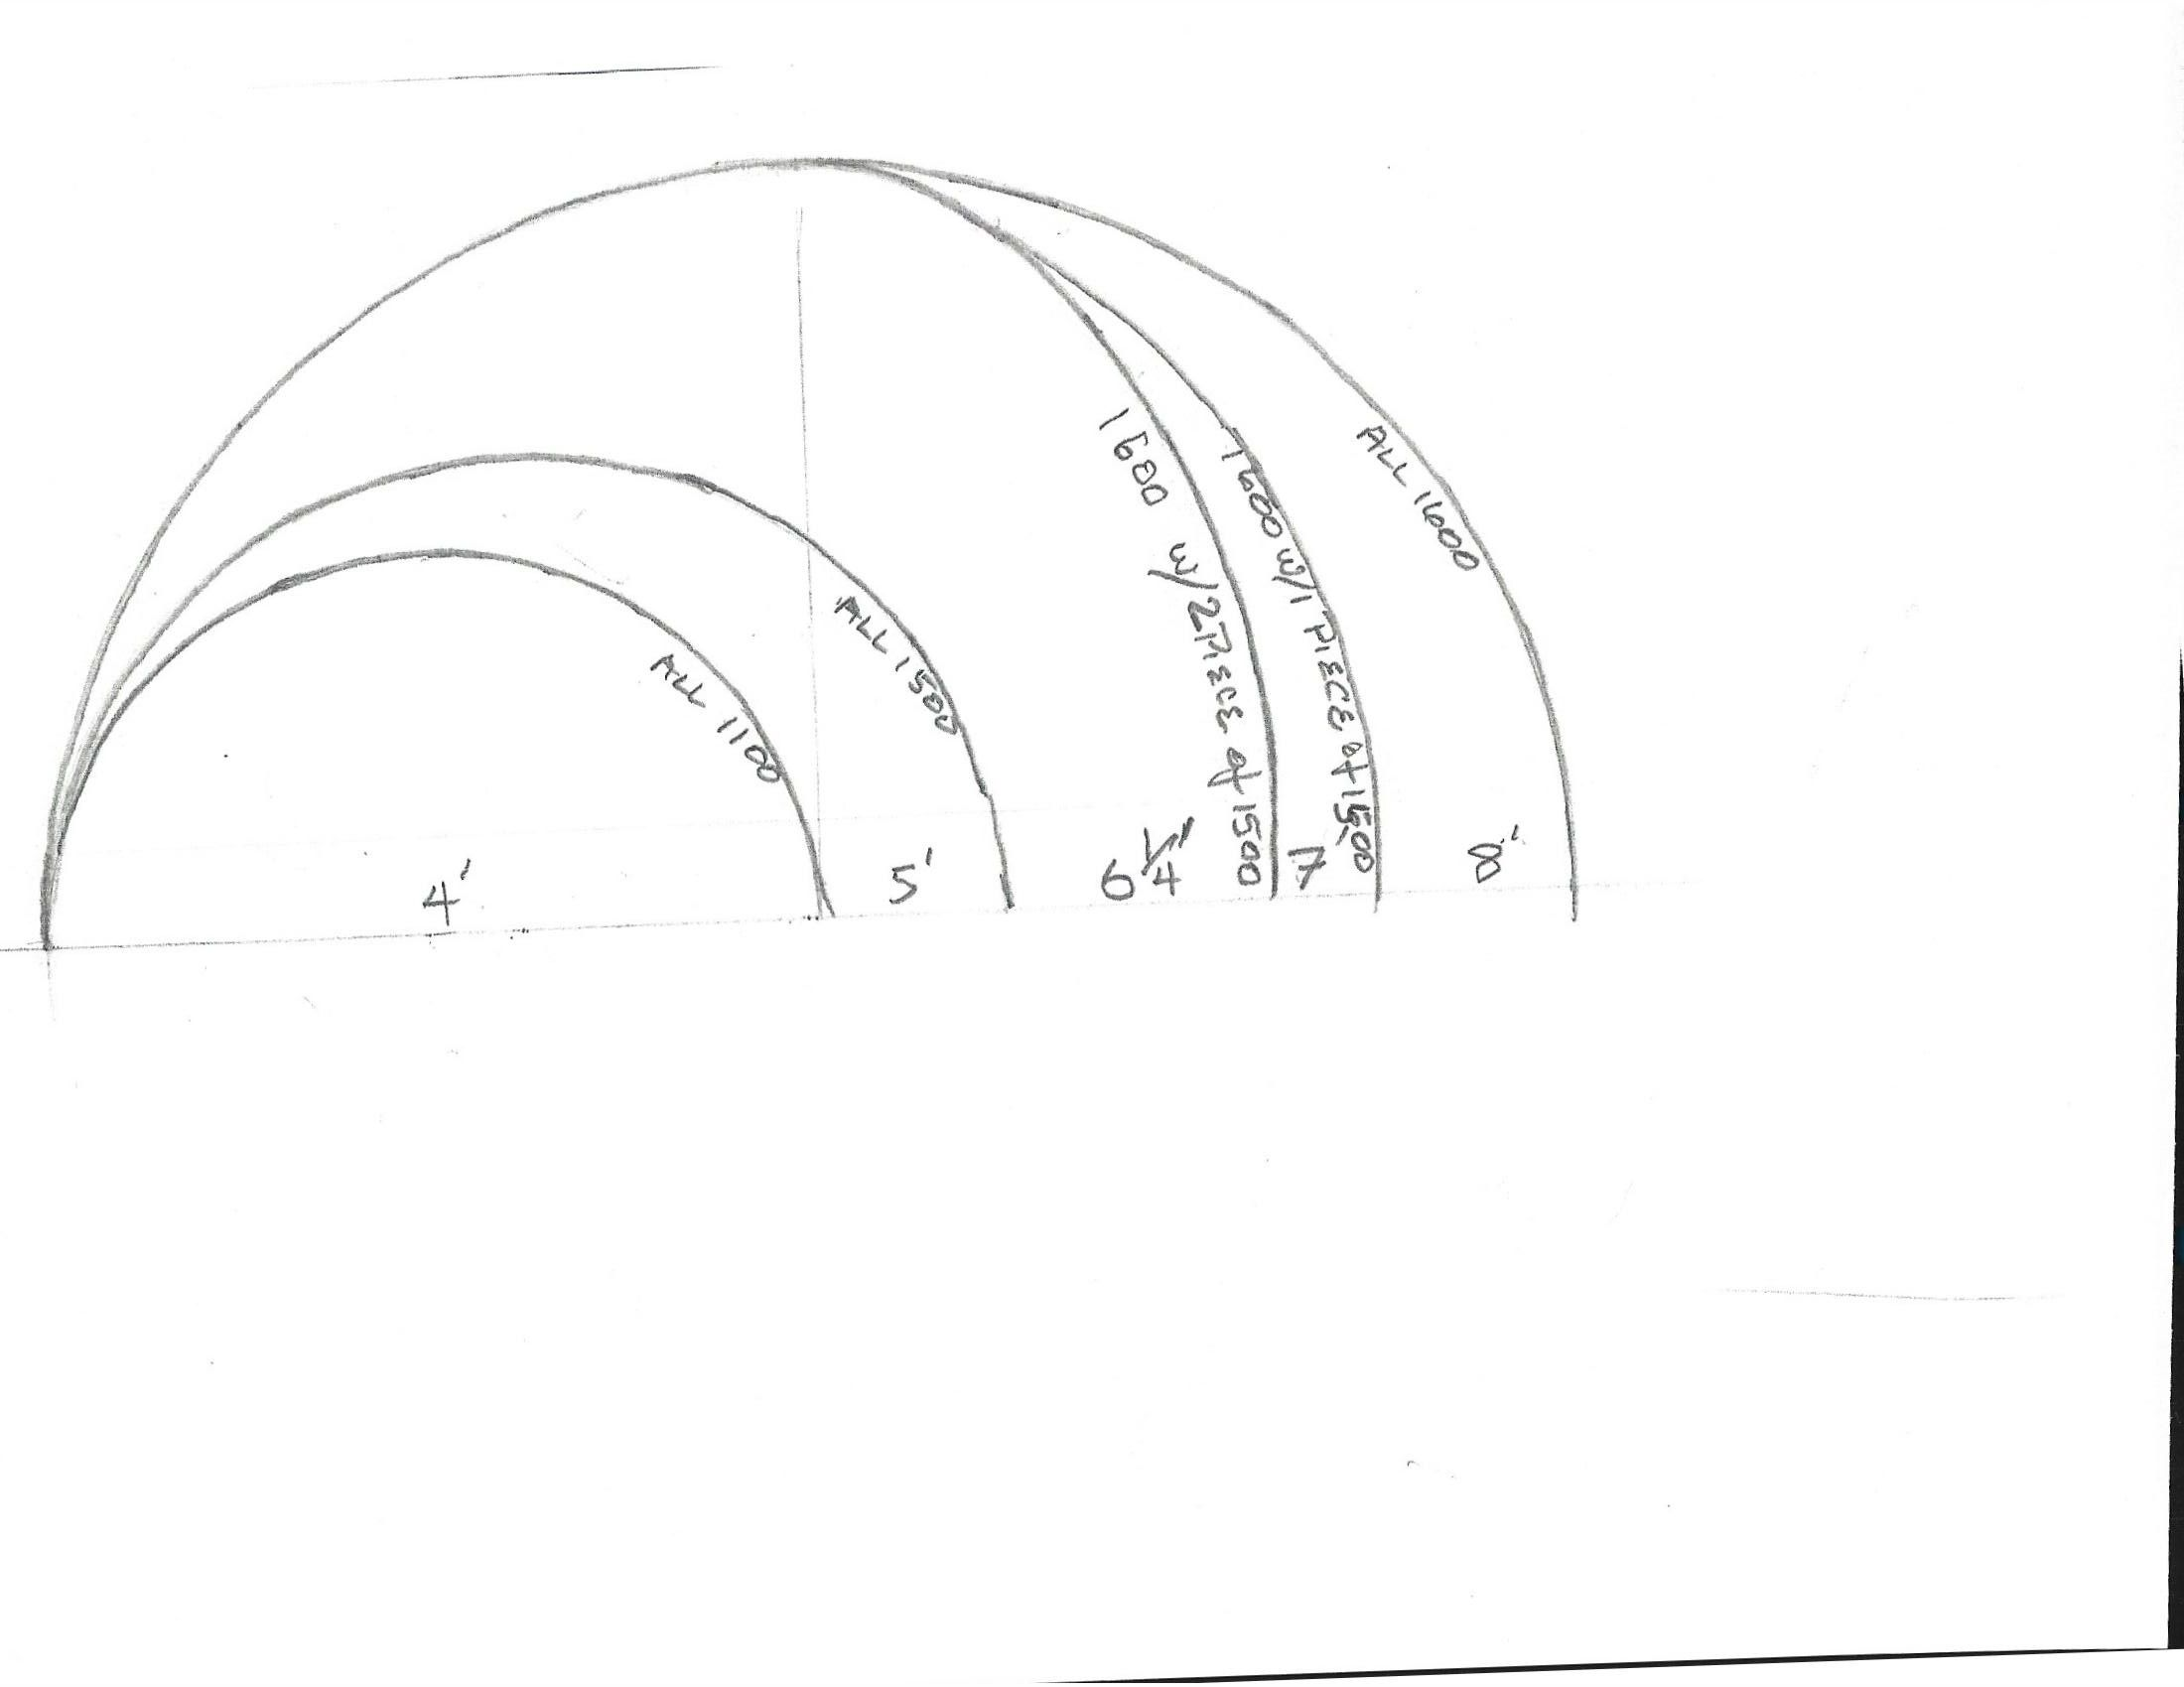 Different Track With Different Radius